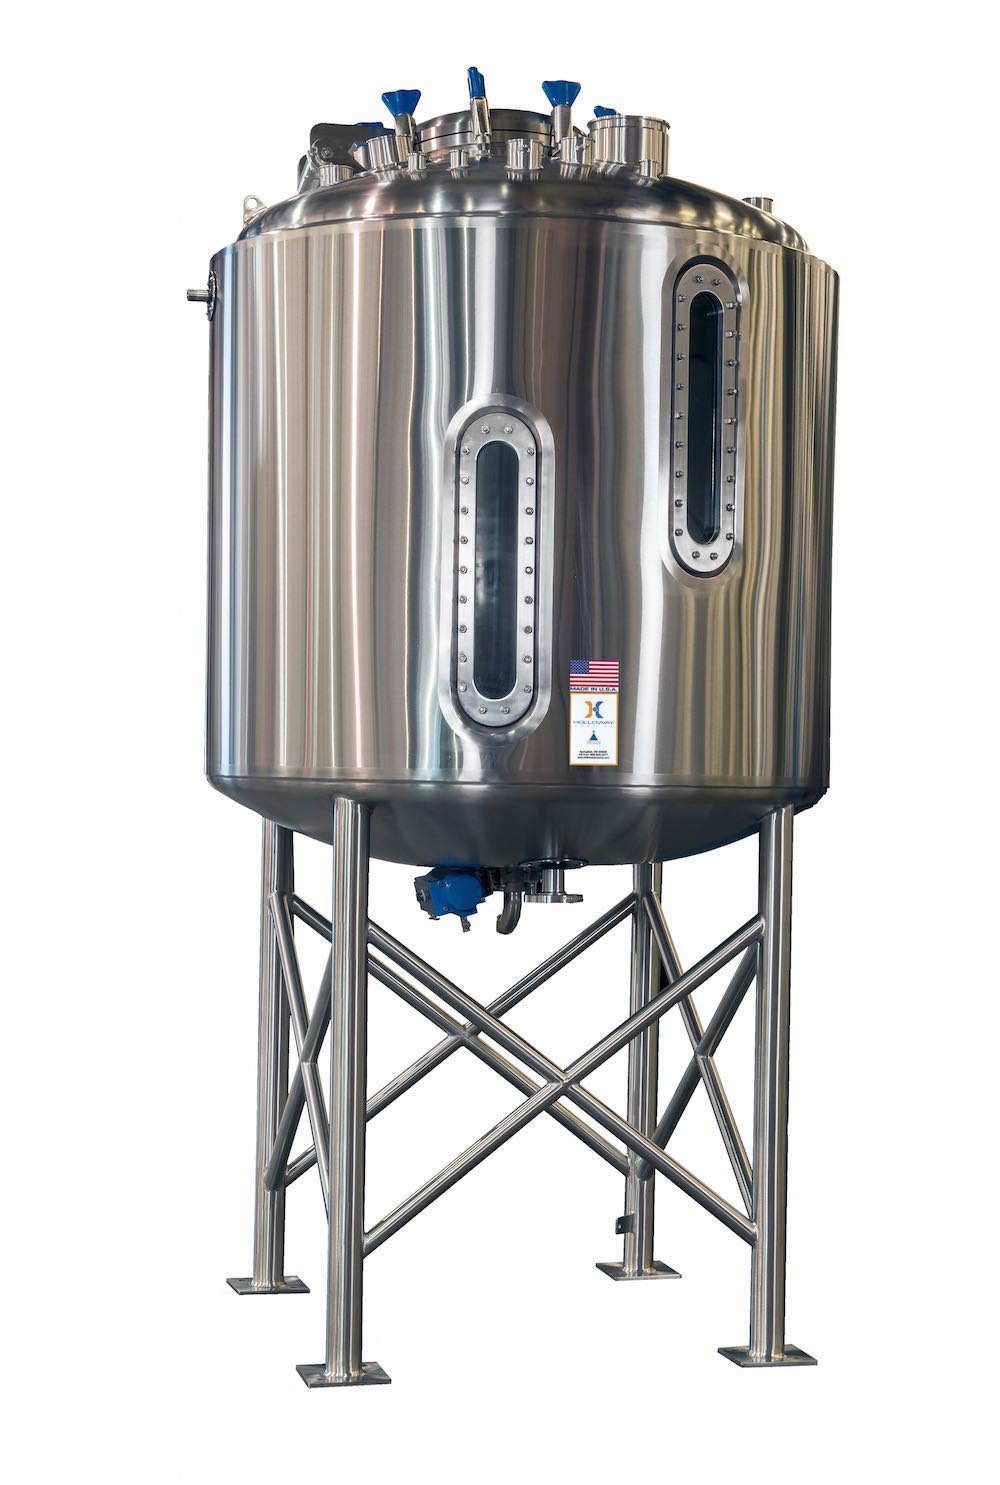 To meet ASME pressure vessels standards, this tank with sight glass follows the stainless steel ASME code.